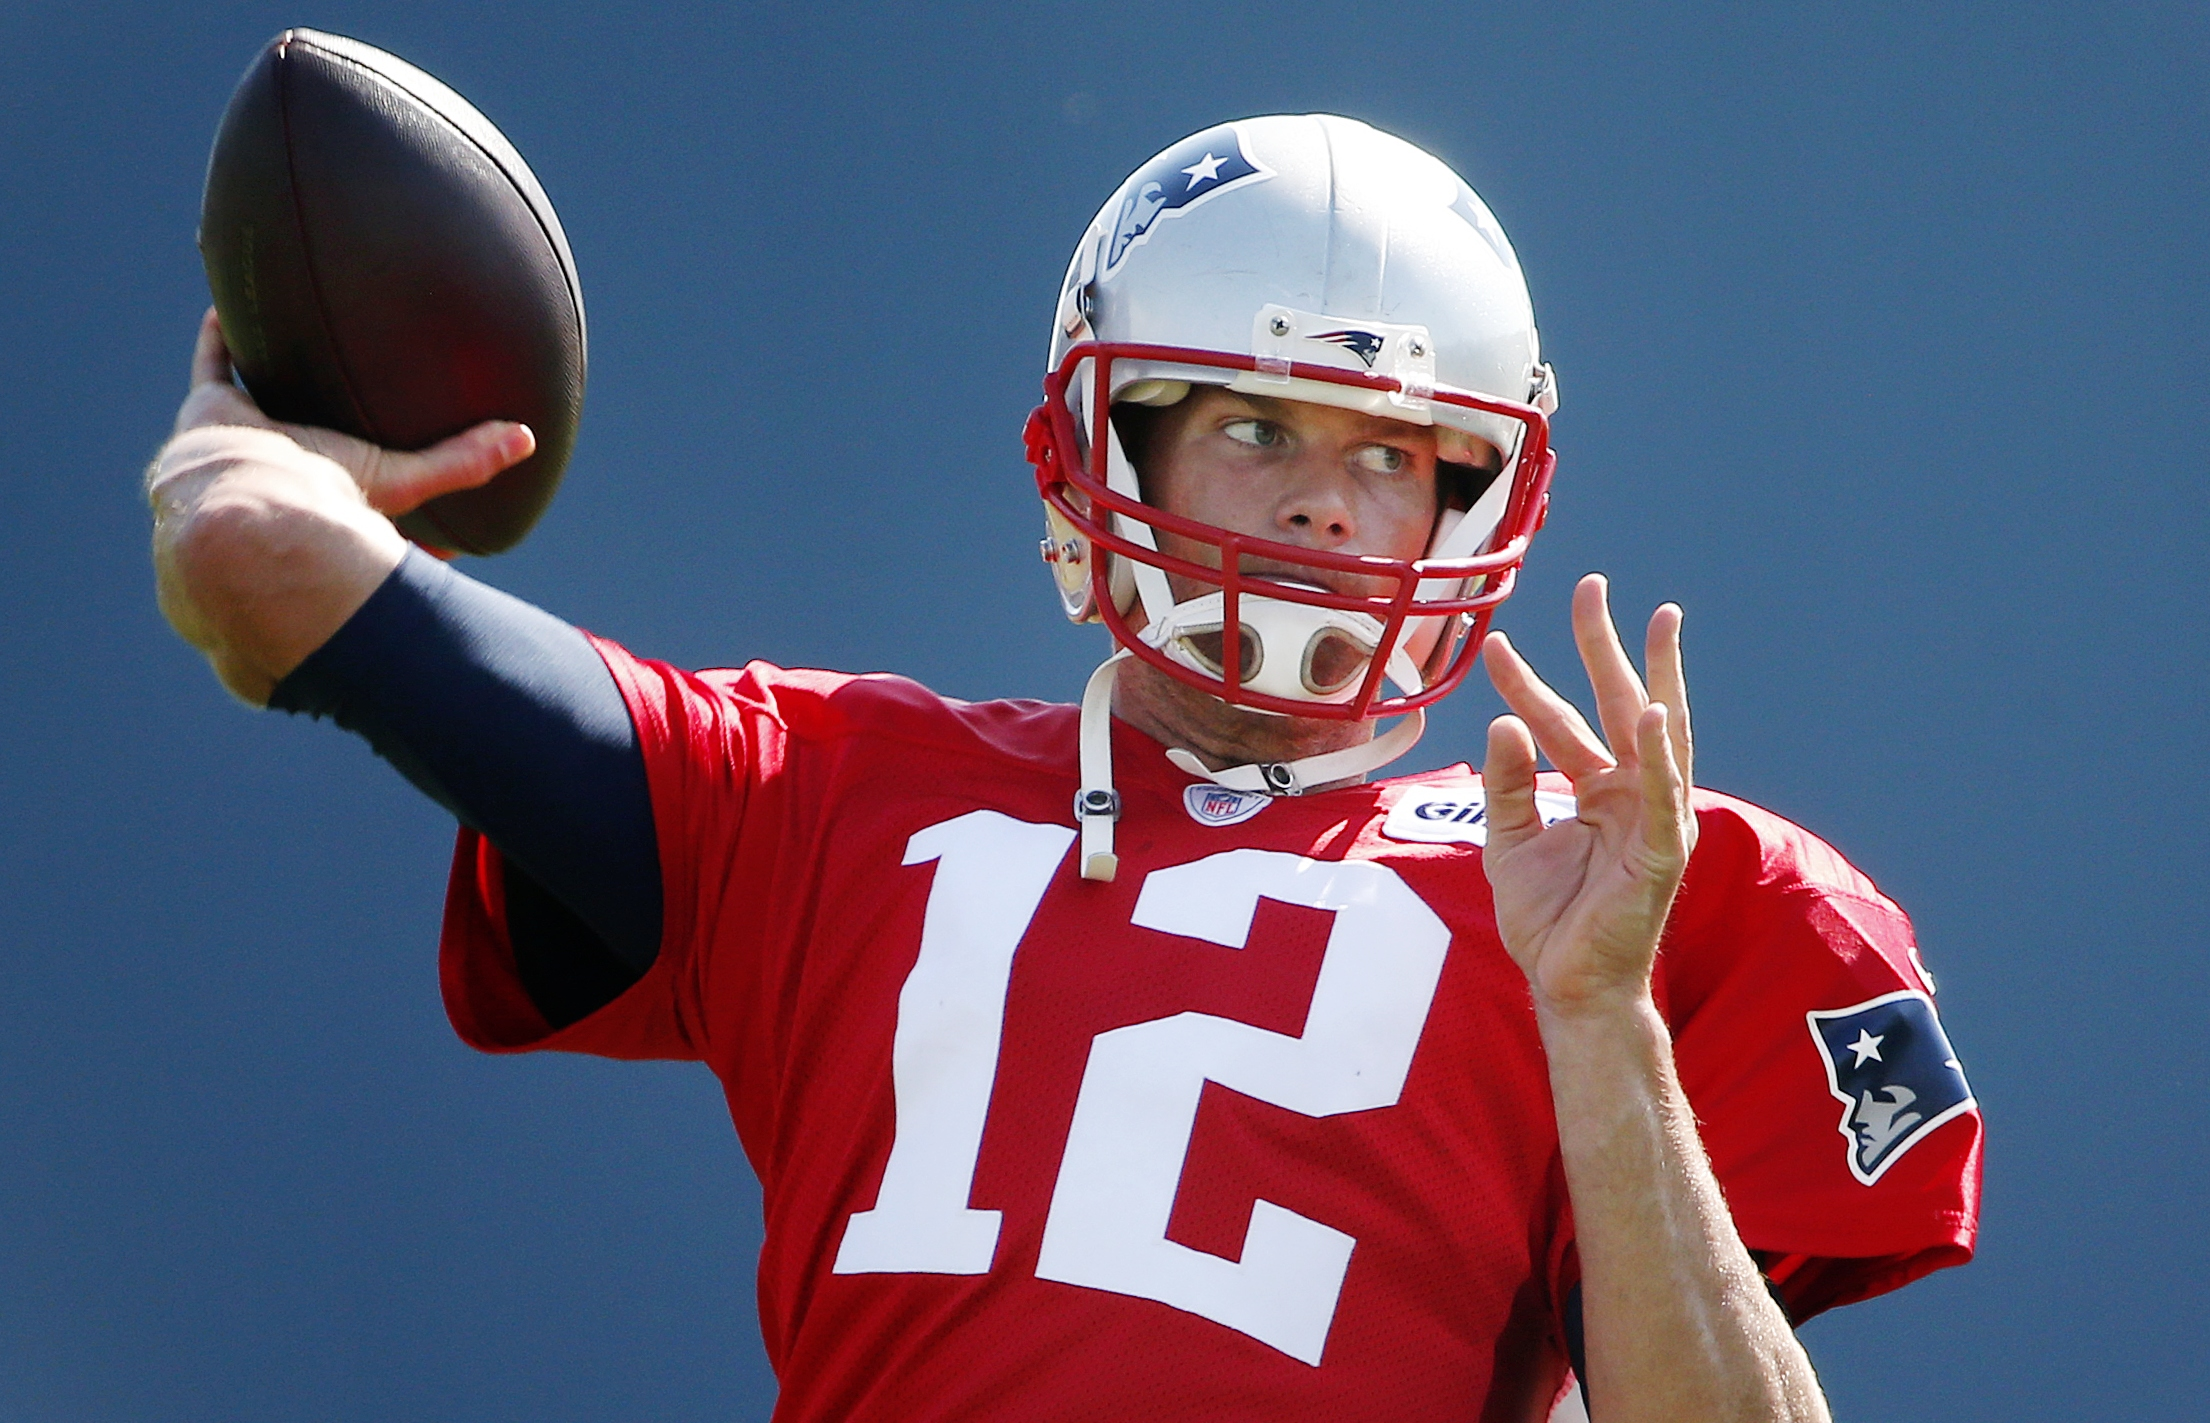 New England Patriots quarterback Tom Brady passes during an NFL football training camp in Foxborough, Mass., Saturday, Aug. 1, 2015. (AP Photo/Michael Dwyer)